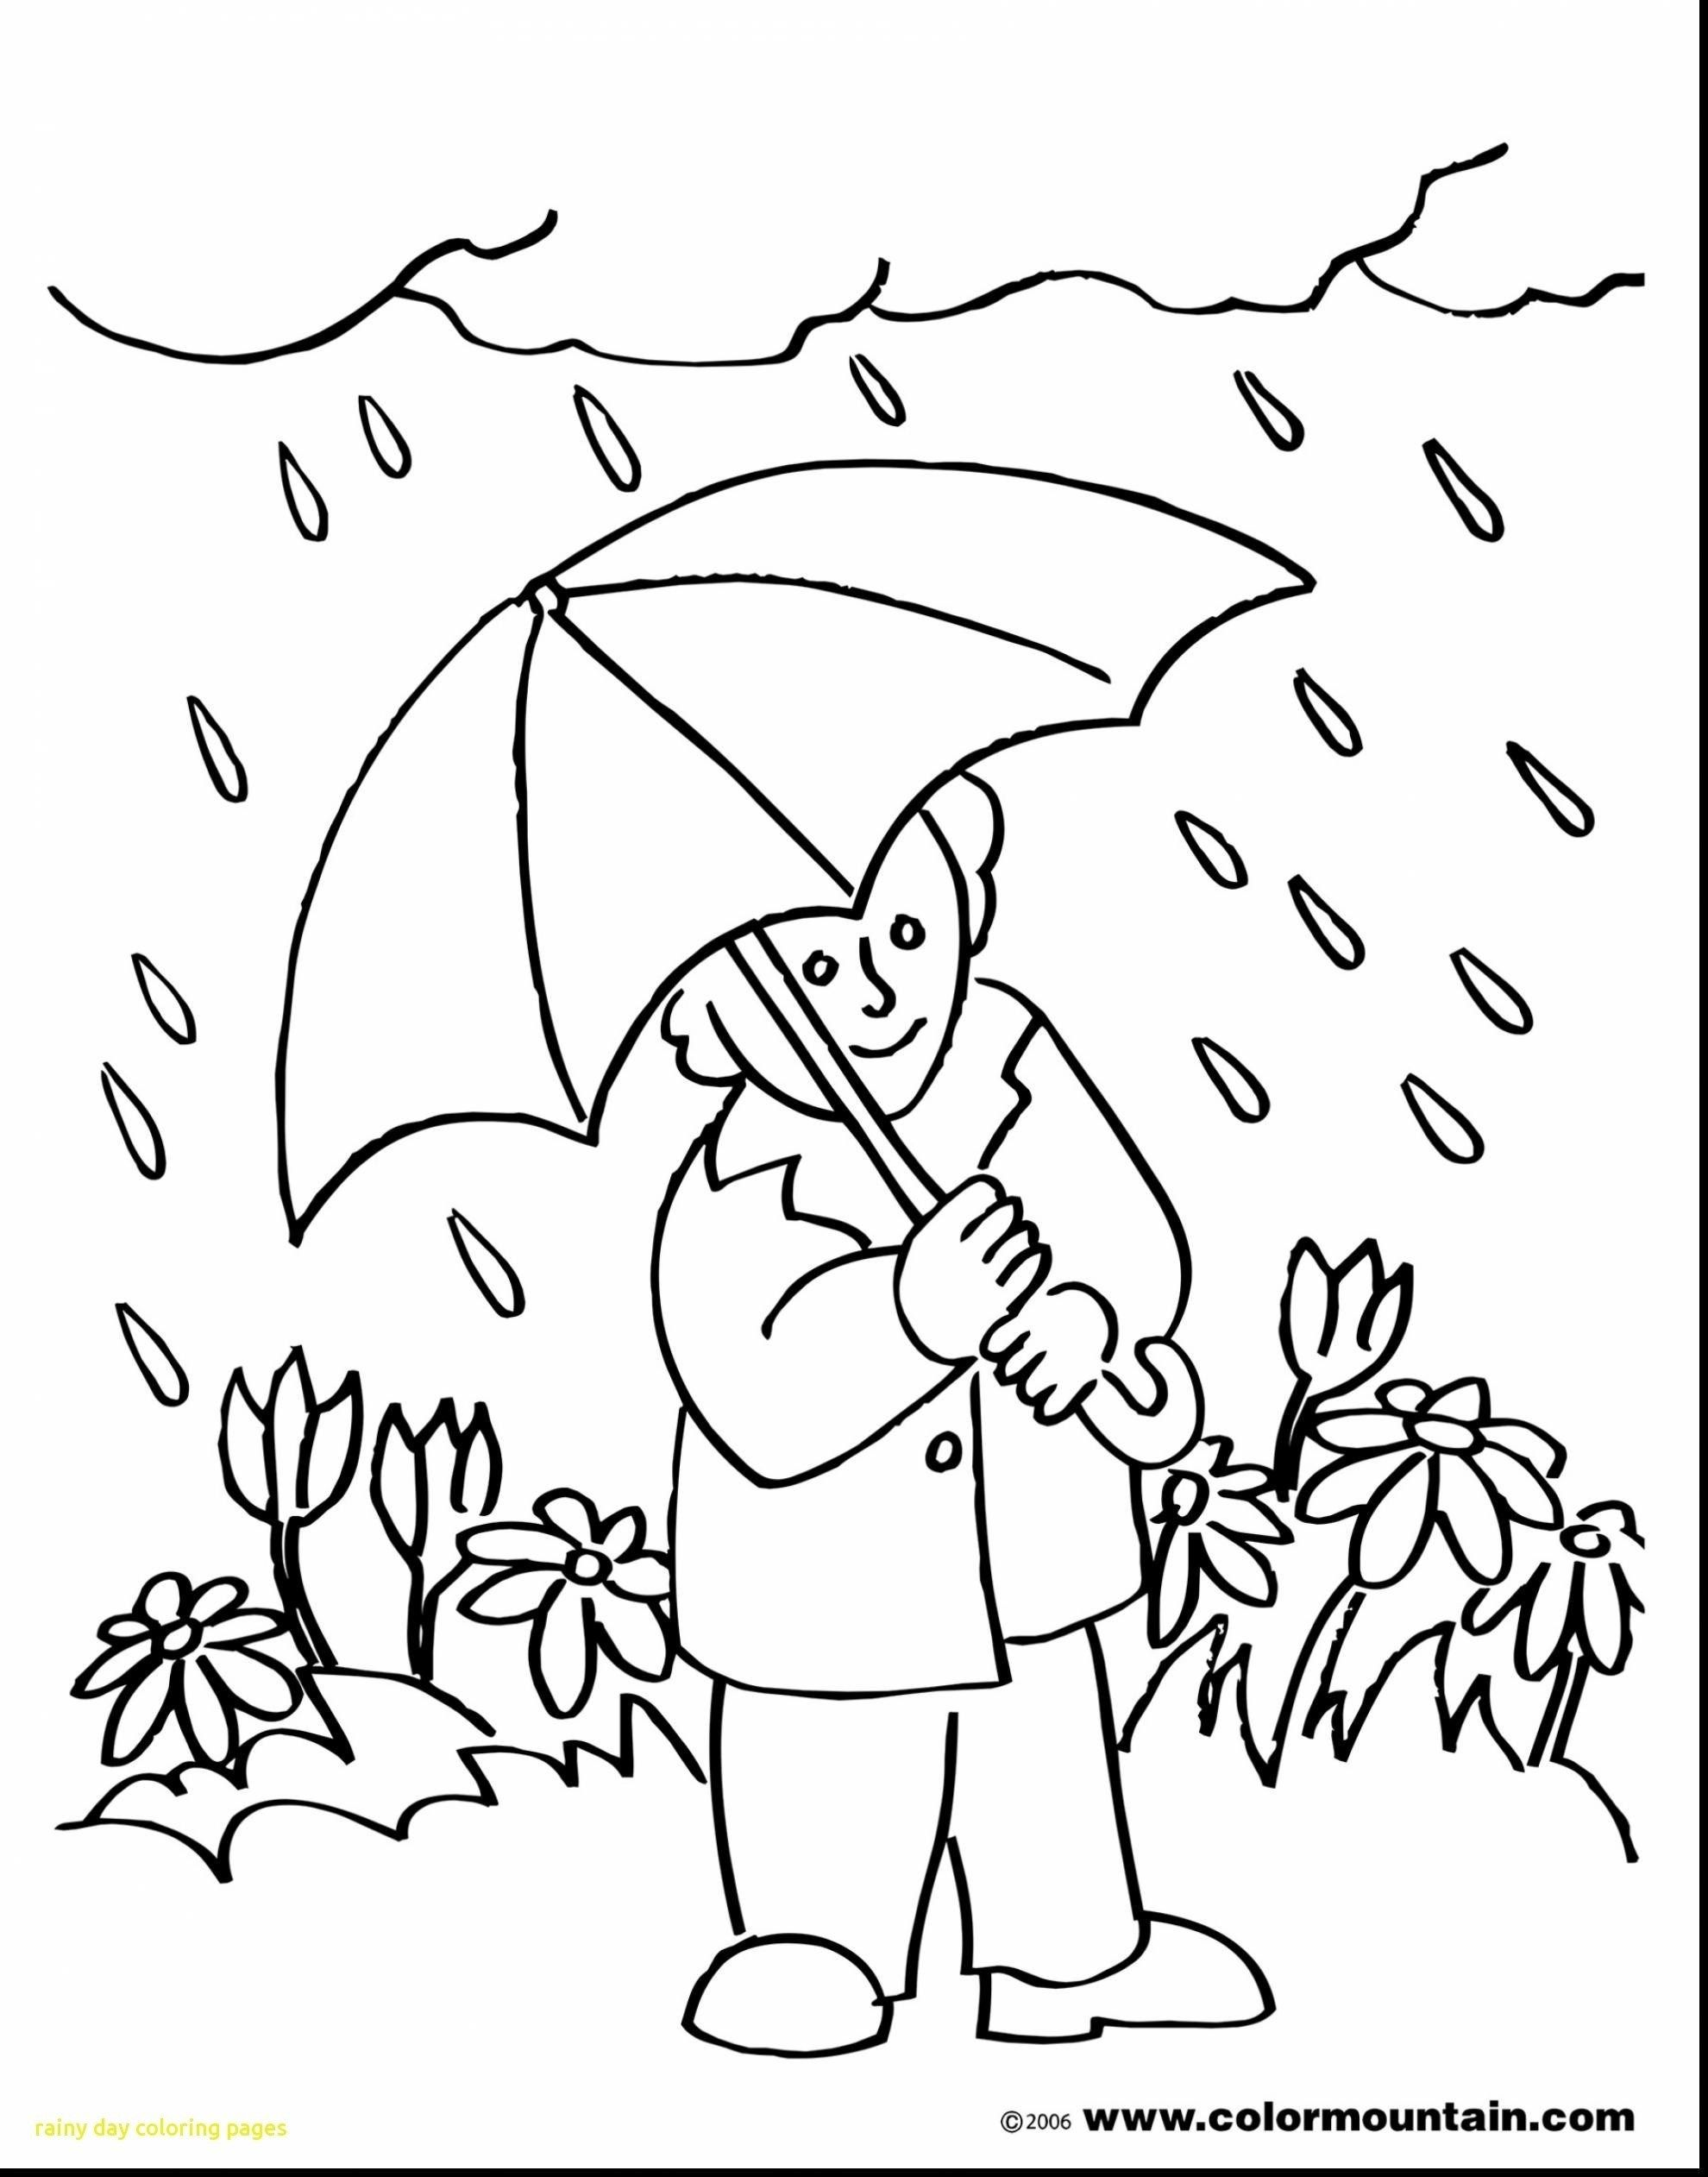 25 Wonderful Picture Of Rainy Day Coloring Pages Davemelillo Com Fall Coloring Pages Coloring Pages Preschool Coloring Pages